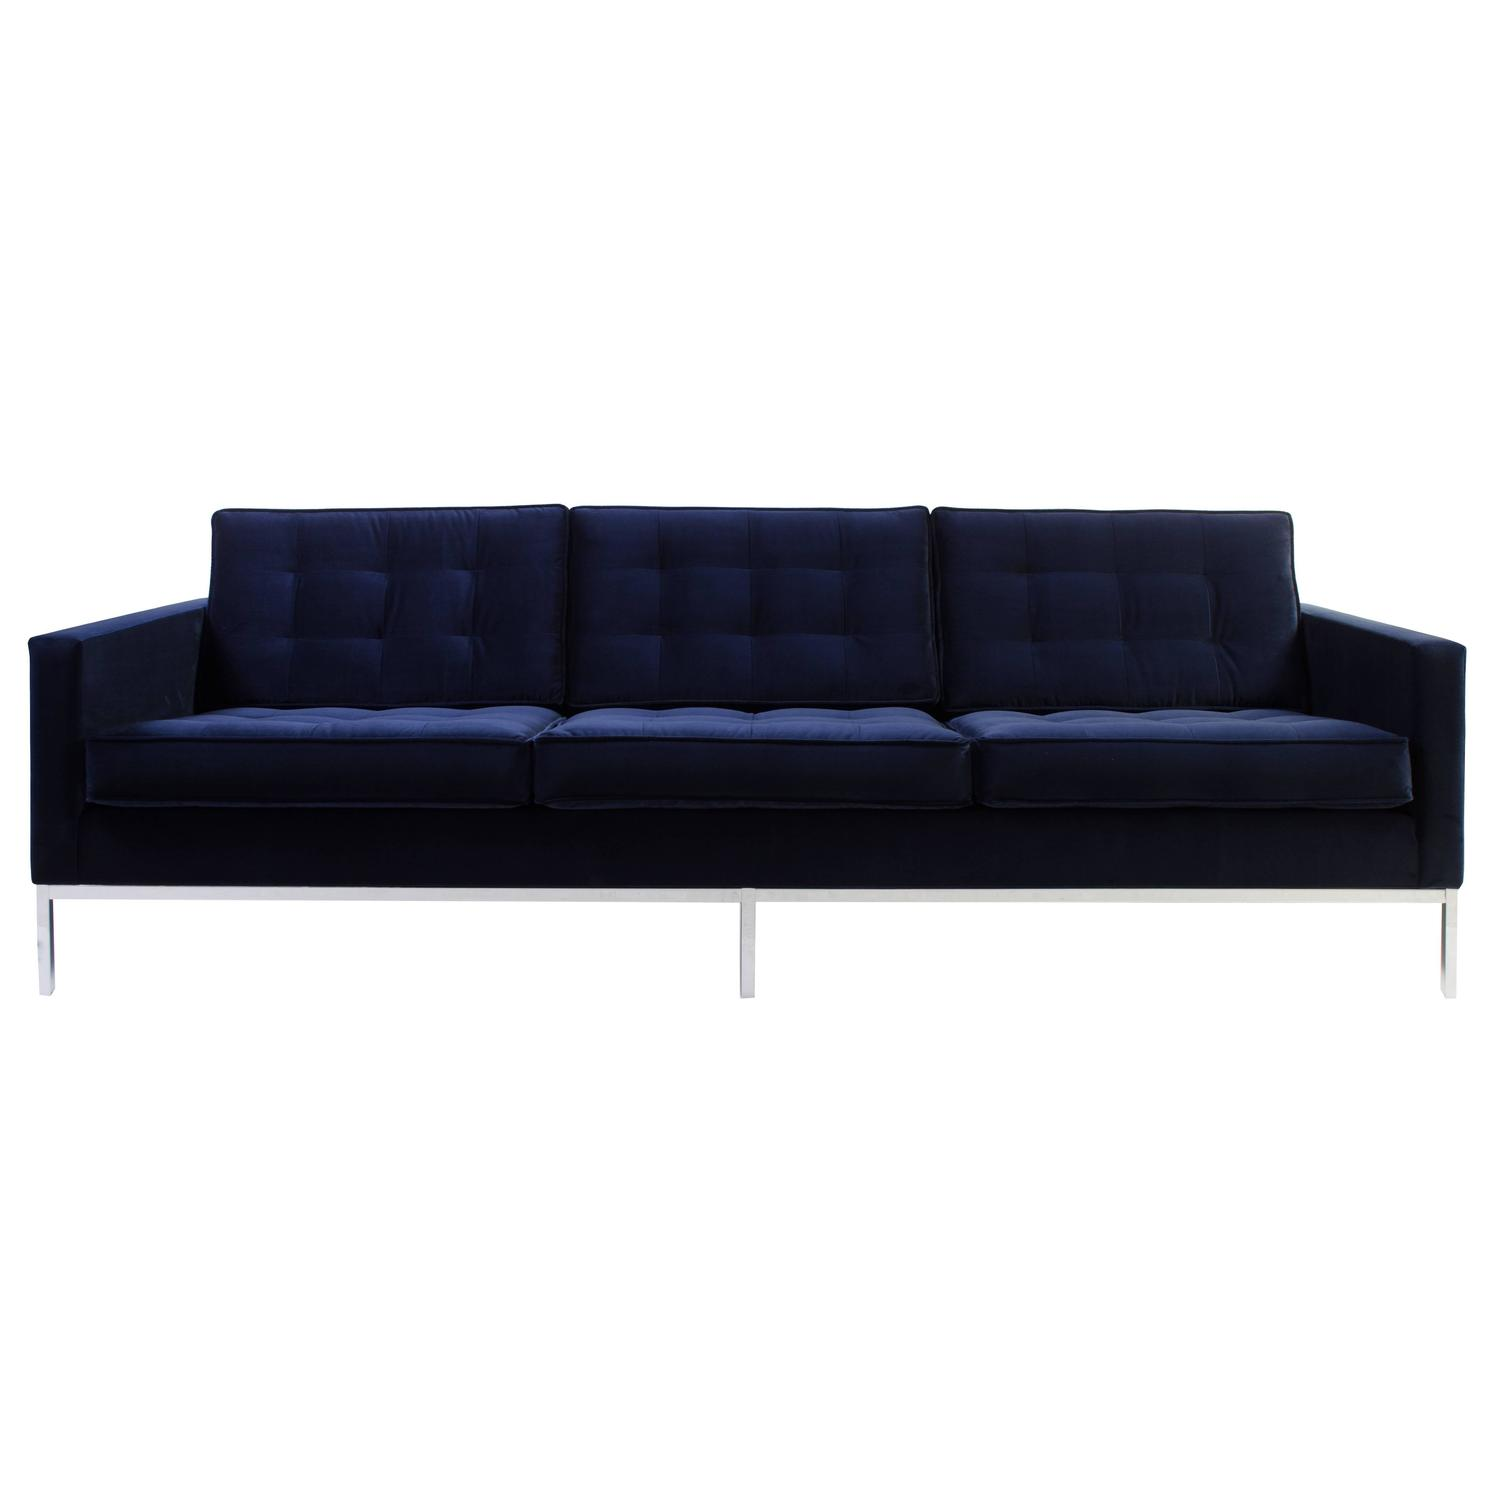 Florence Knoll Sofa in Navy Velvet For Sale at 1stdibs